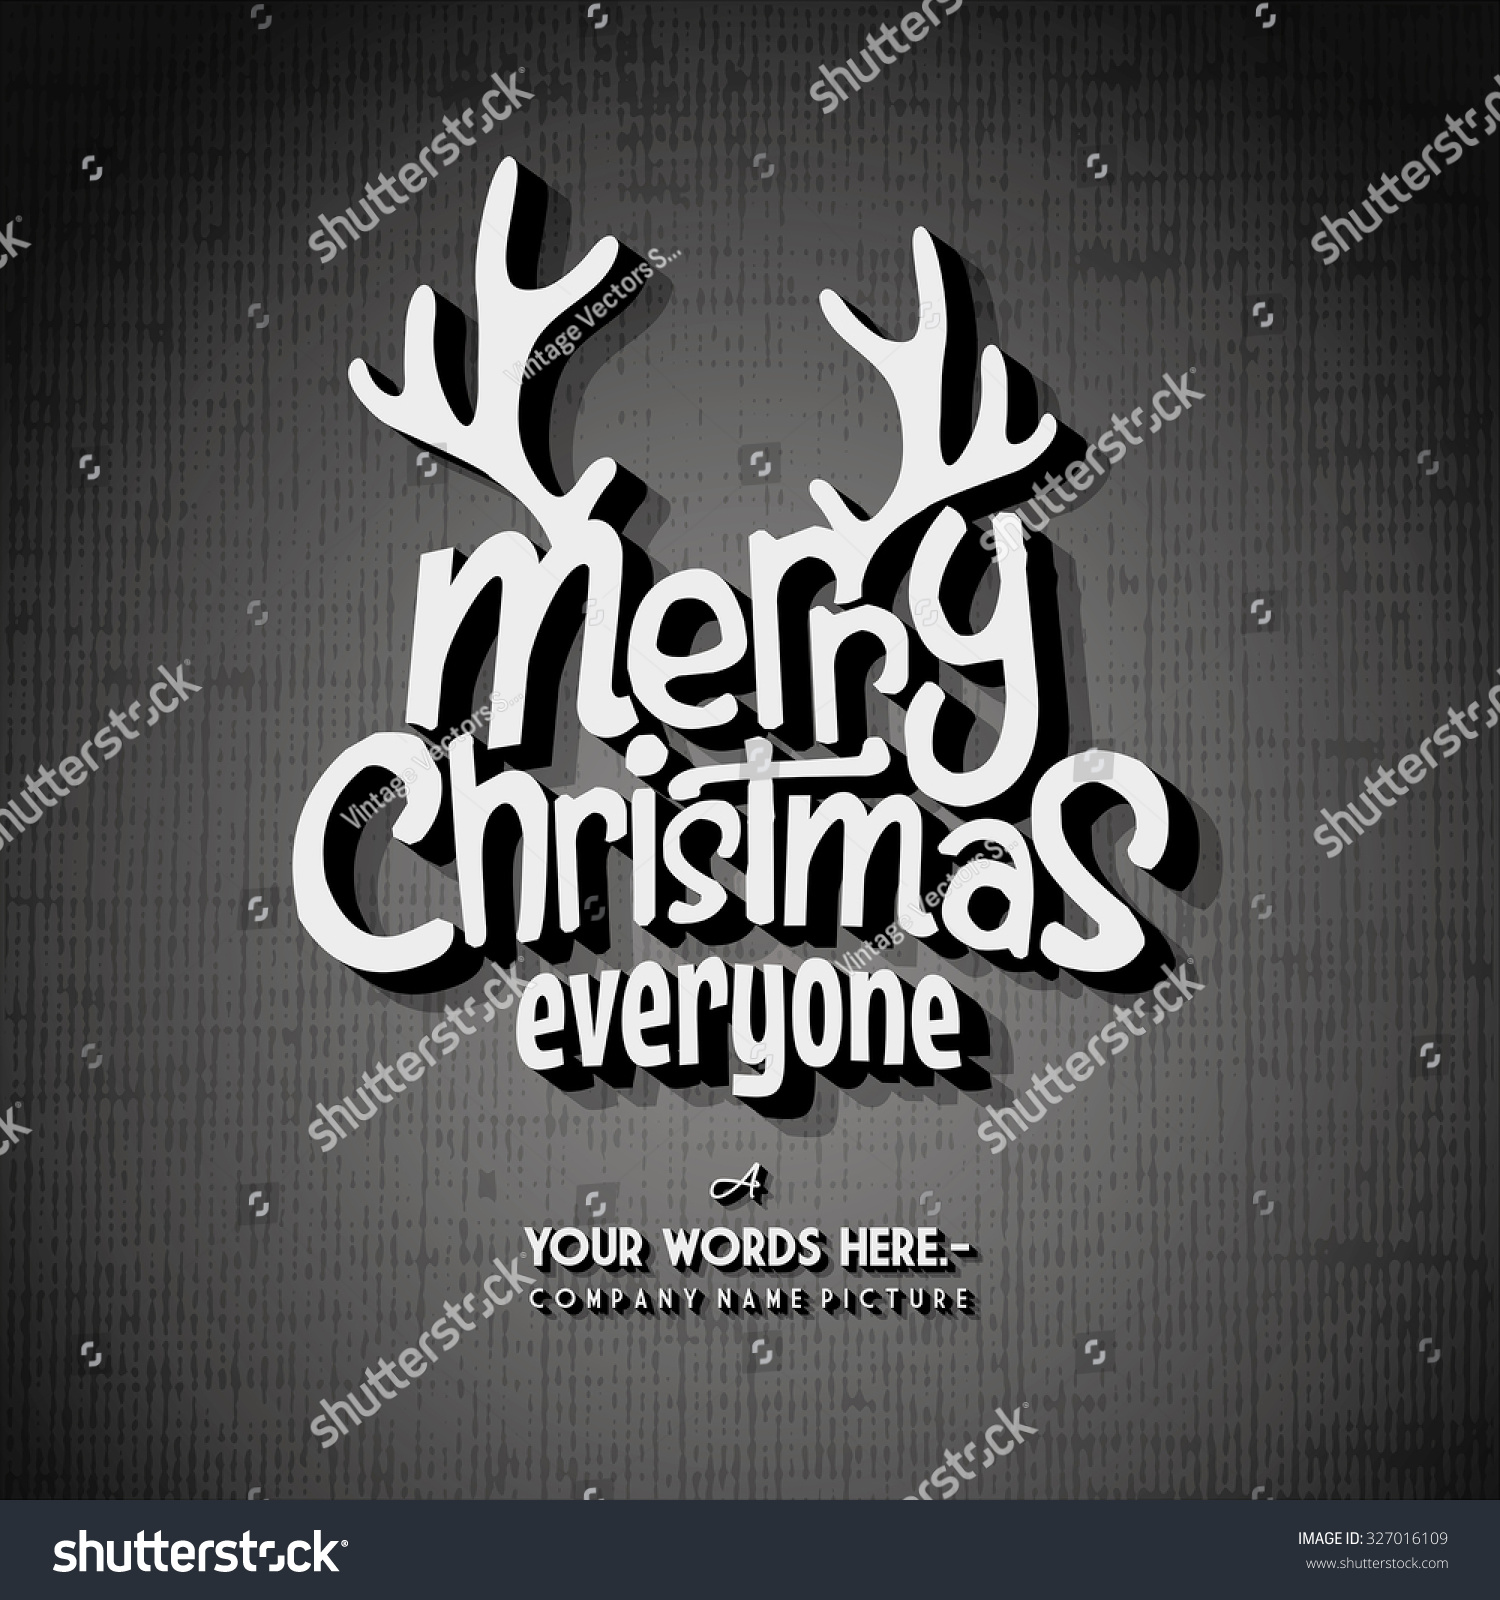 merry christmas end of letter